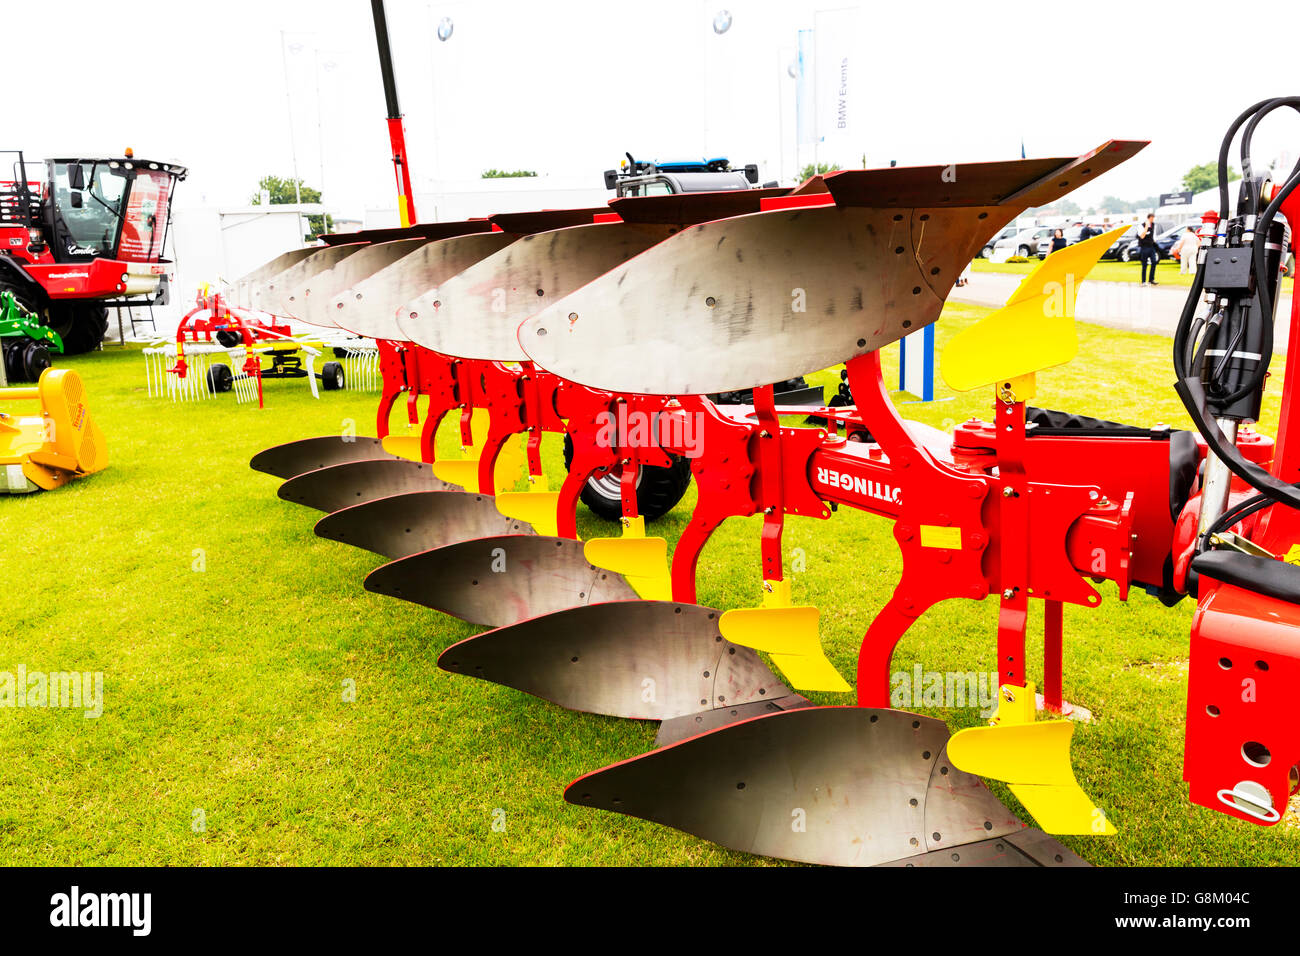 Plough plow farming for initial cultivation of soil equipment agriculture tool close detail UK England GB - Stock Image